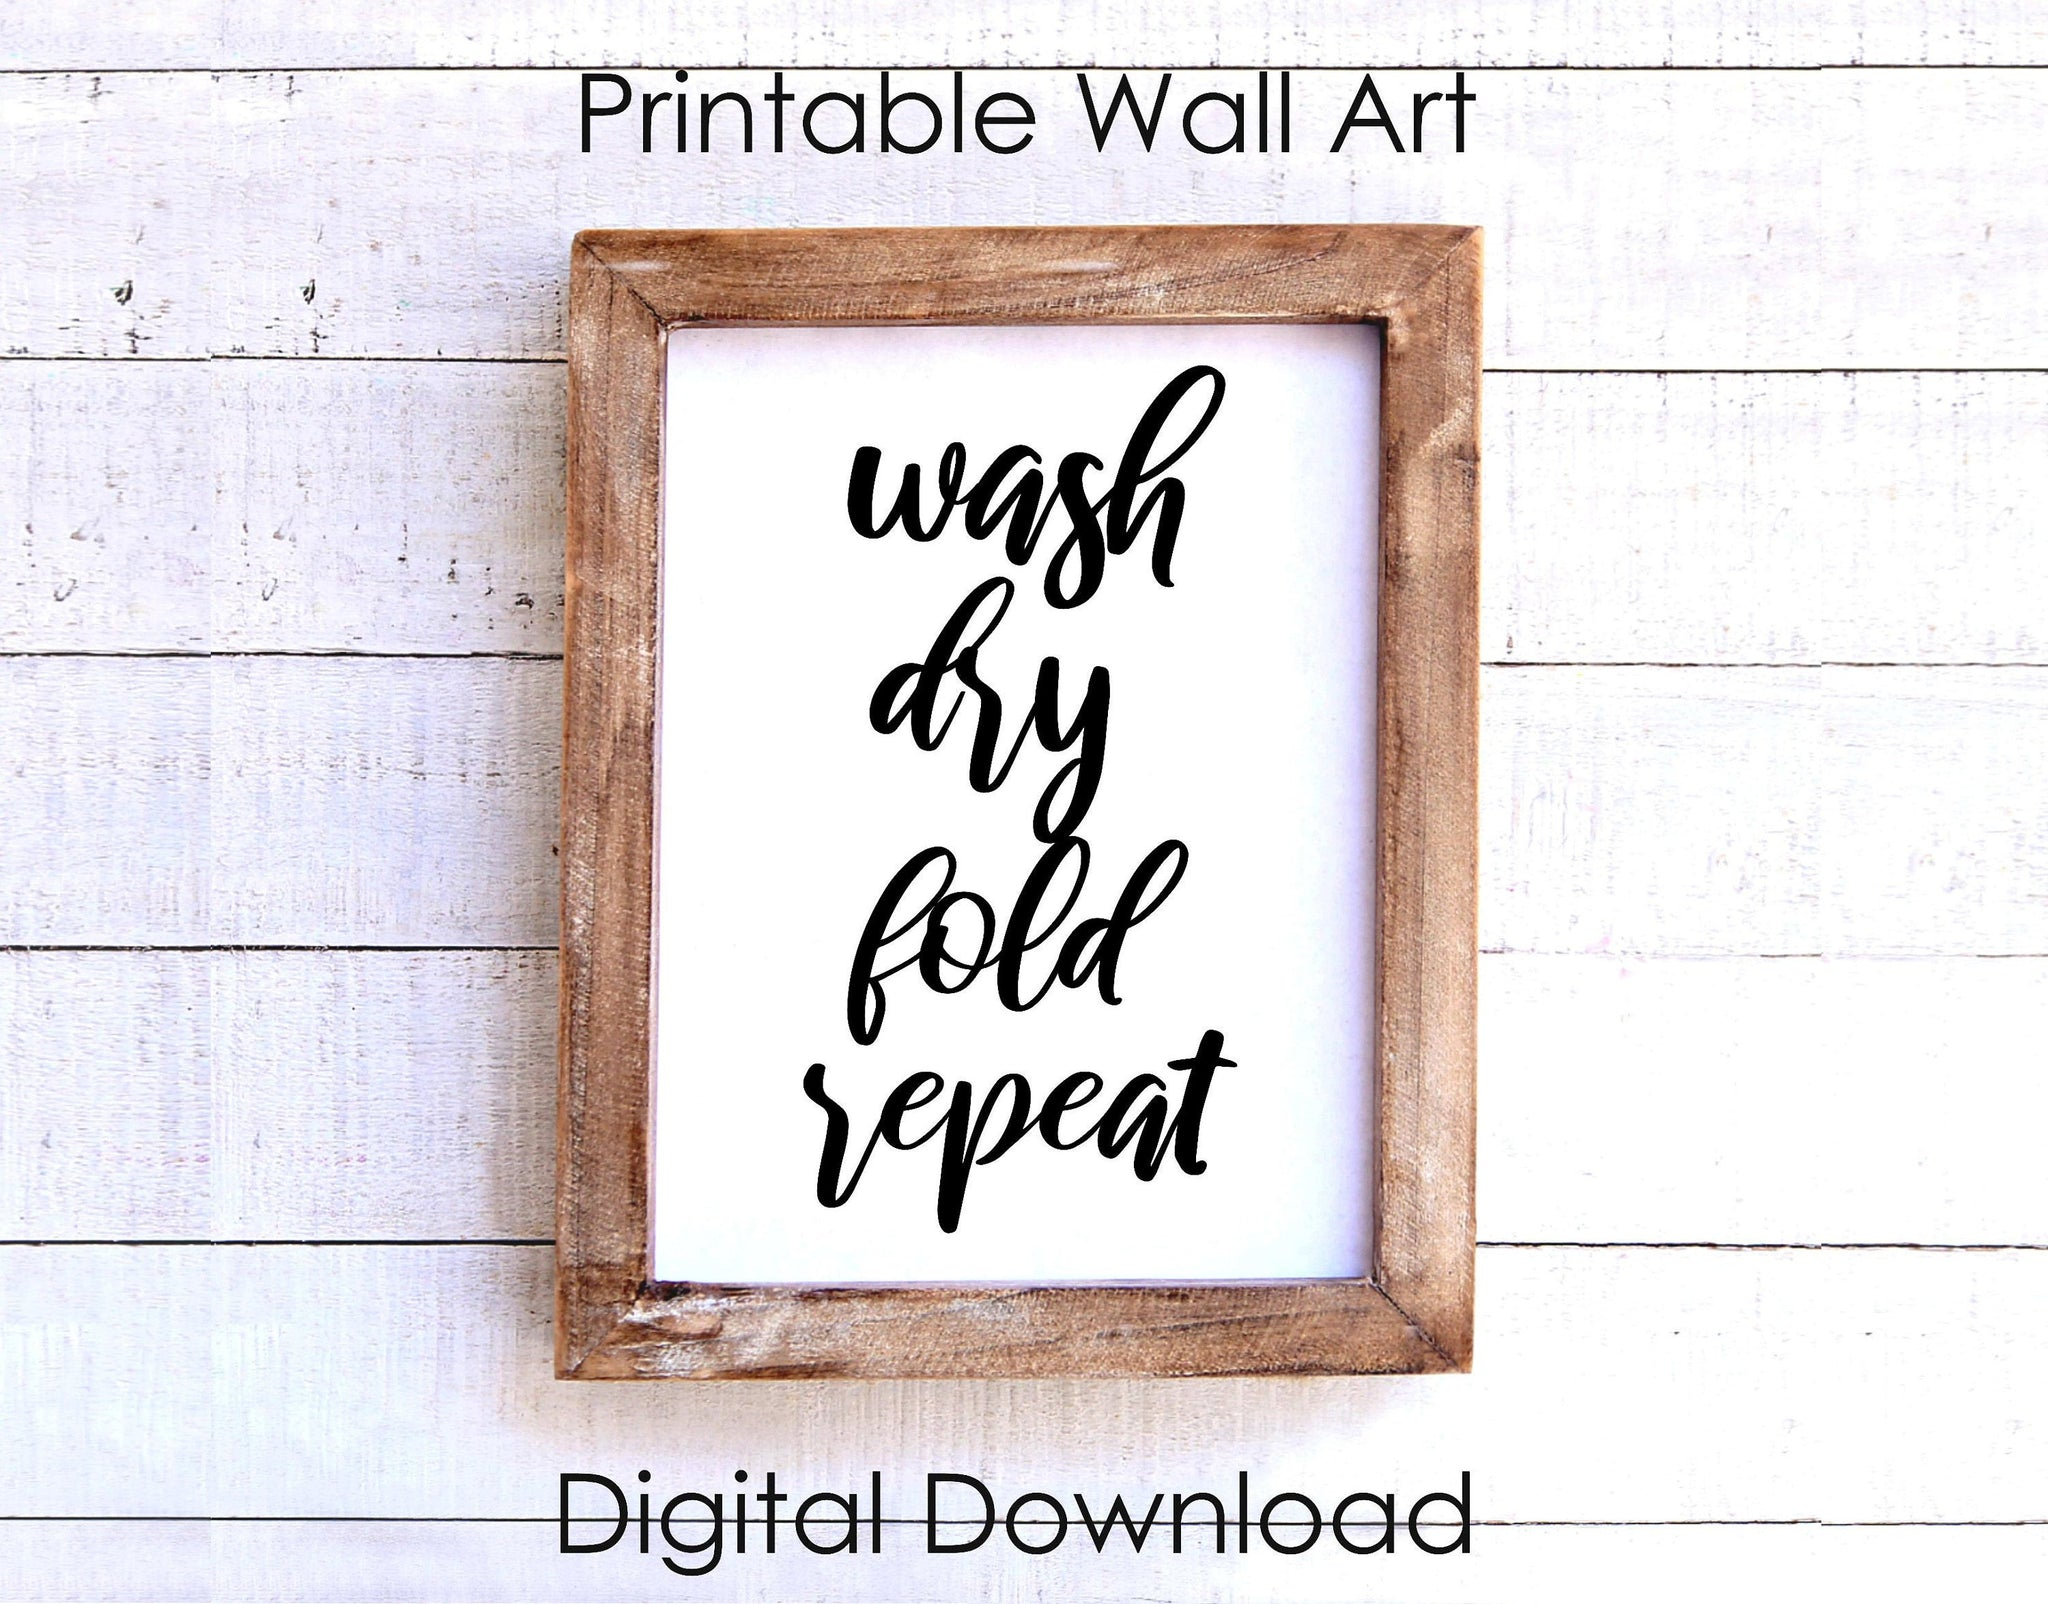 Laundry Room Printable Wall Art, Wash Dry Fold Repeat Wall Art Instant Digital Download